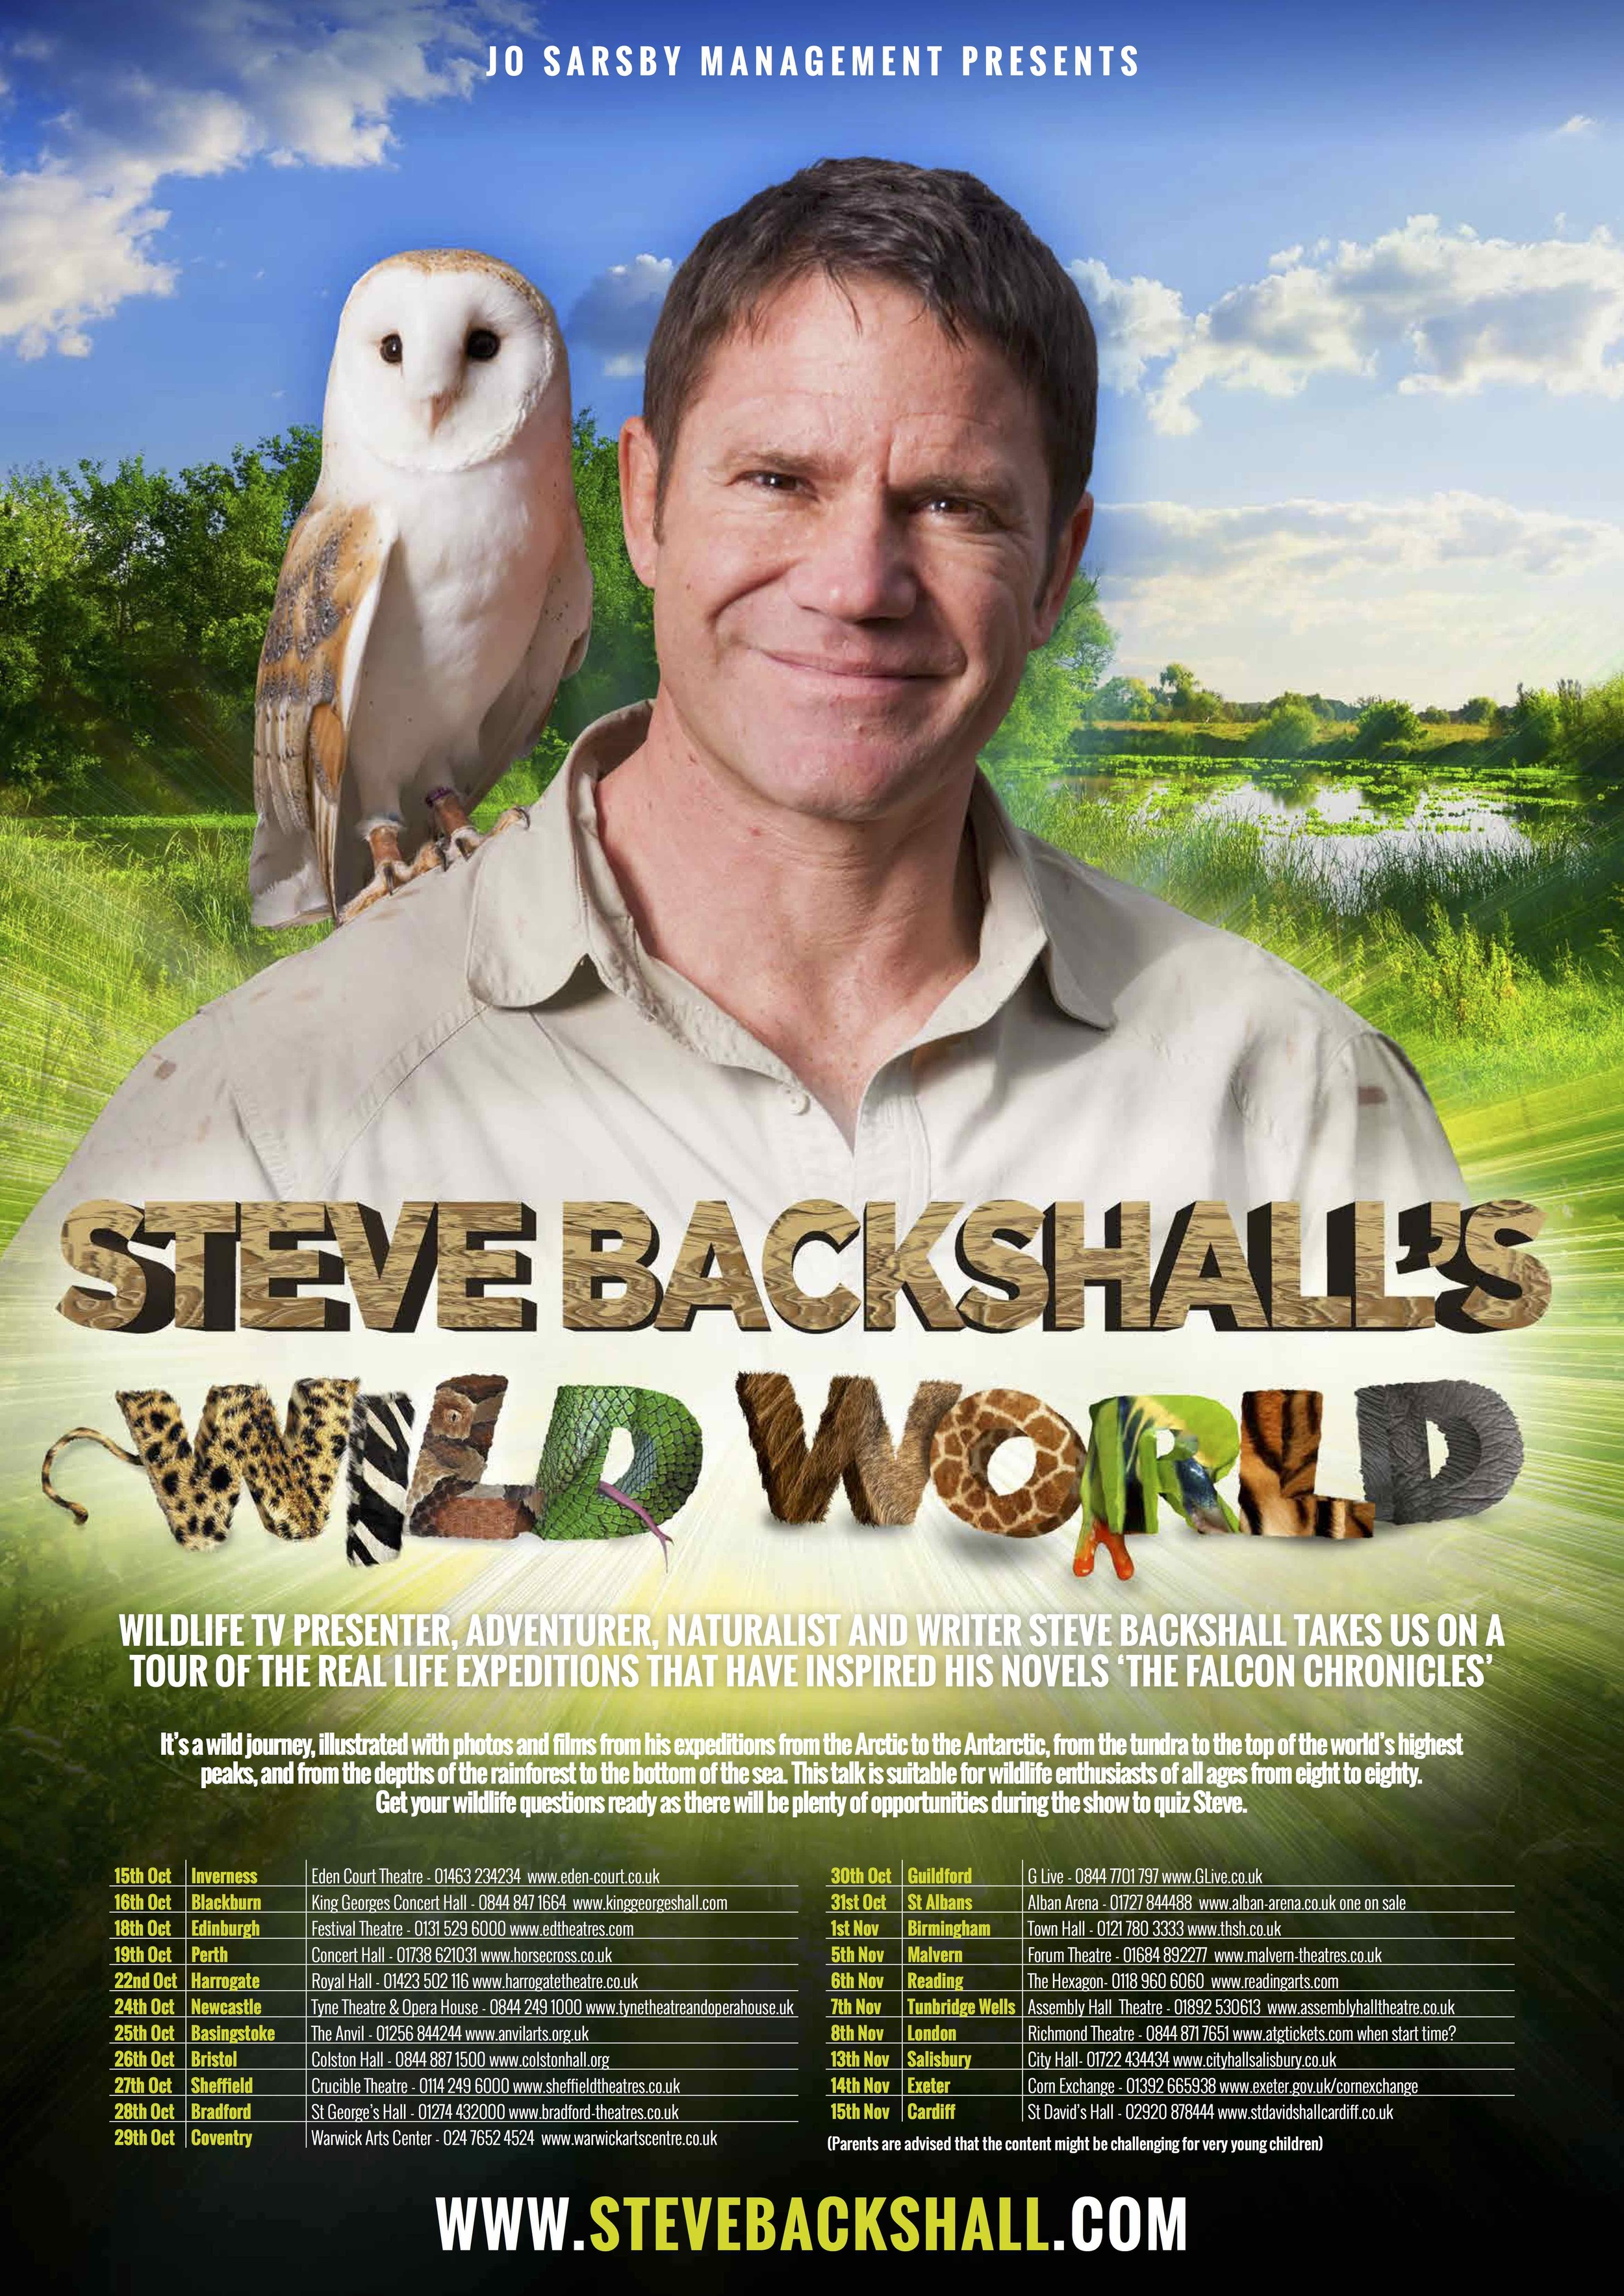 Steve Backshall Wild World Tour 2015 poster